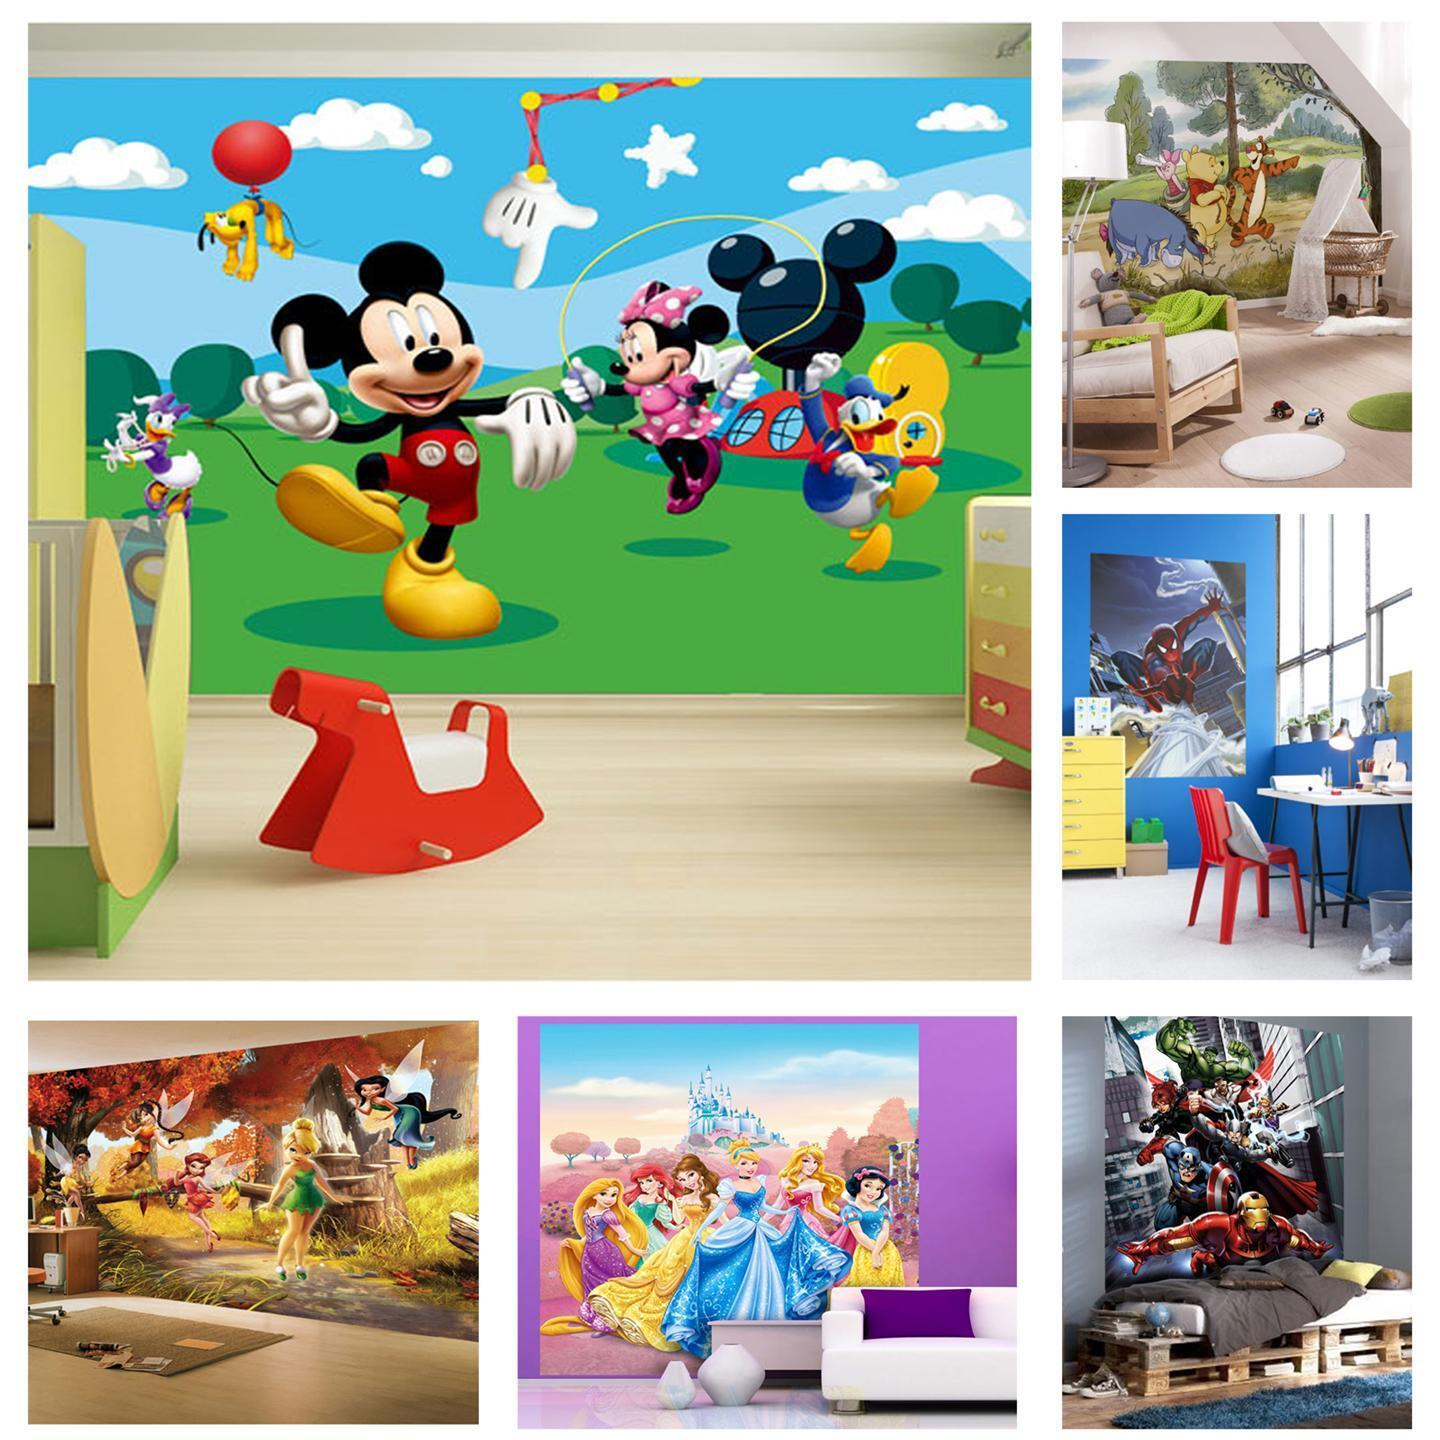 Childrens Wall Murals Wallpaper Childrens Bedroom Disney And Character Wallpaper Wall Mural